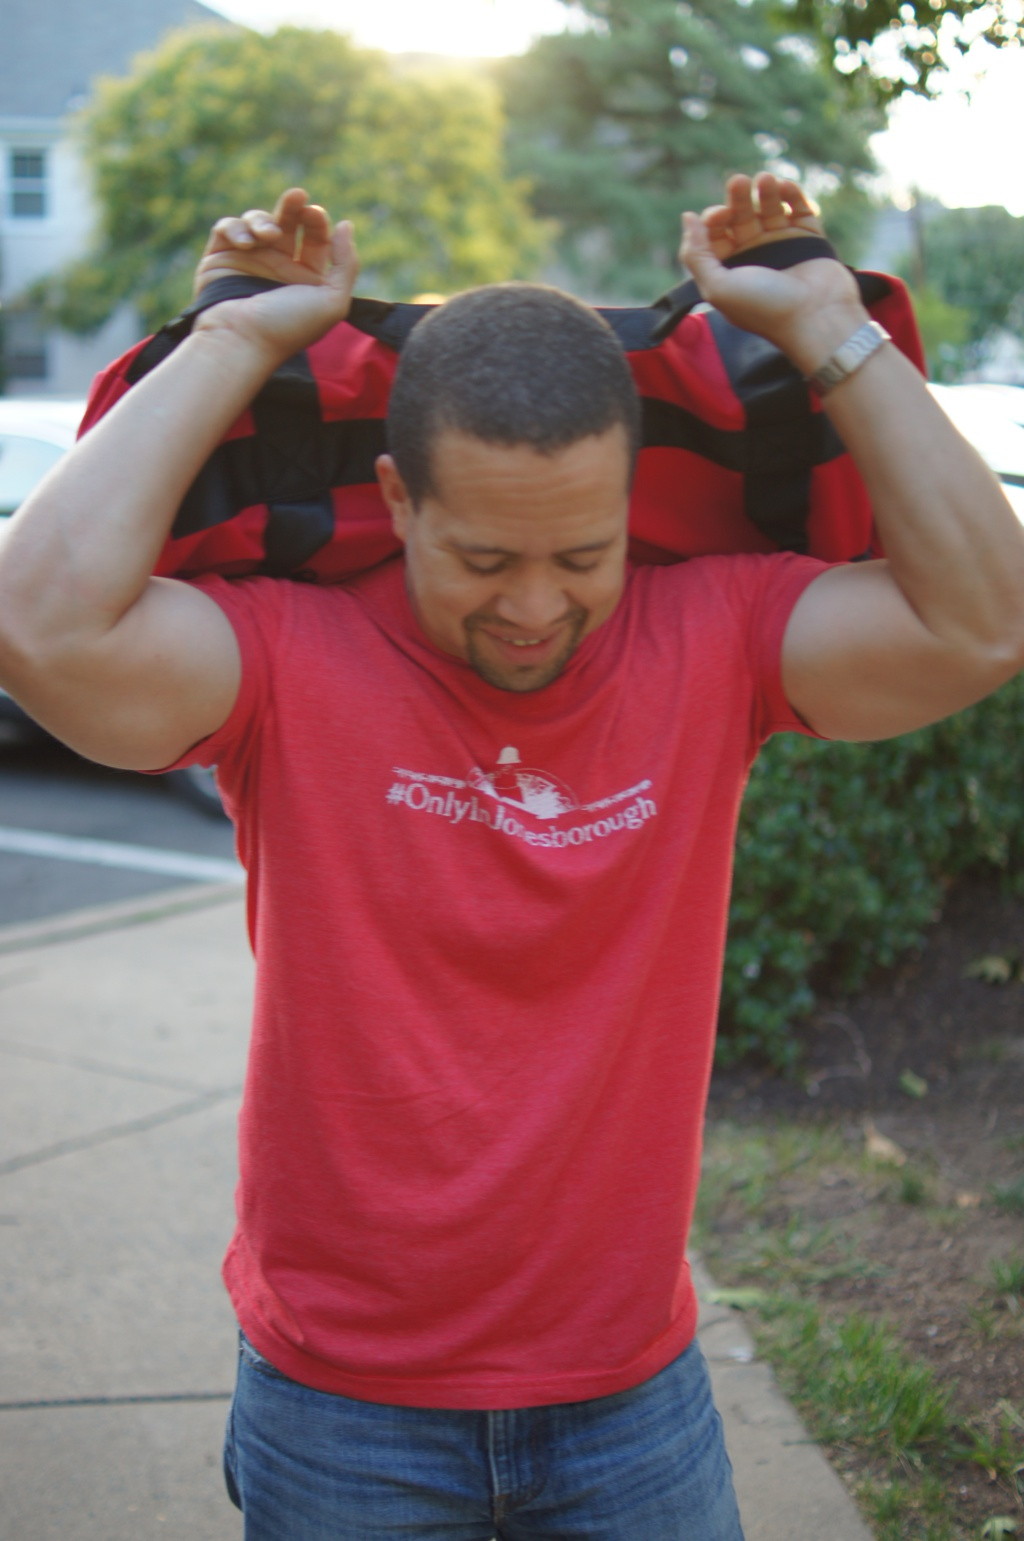 Rep Fitness How to Fill Your Sandbag Pinterest Image 2